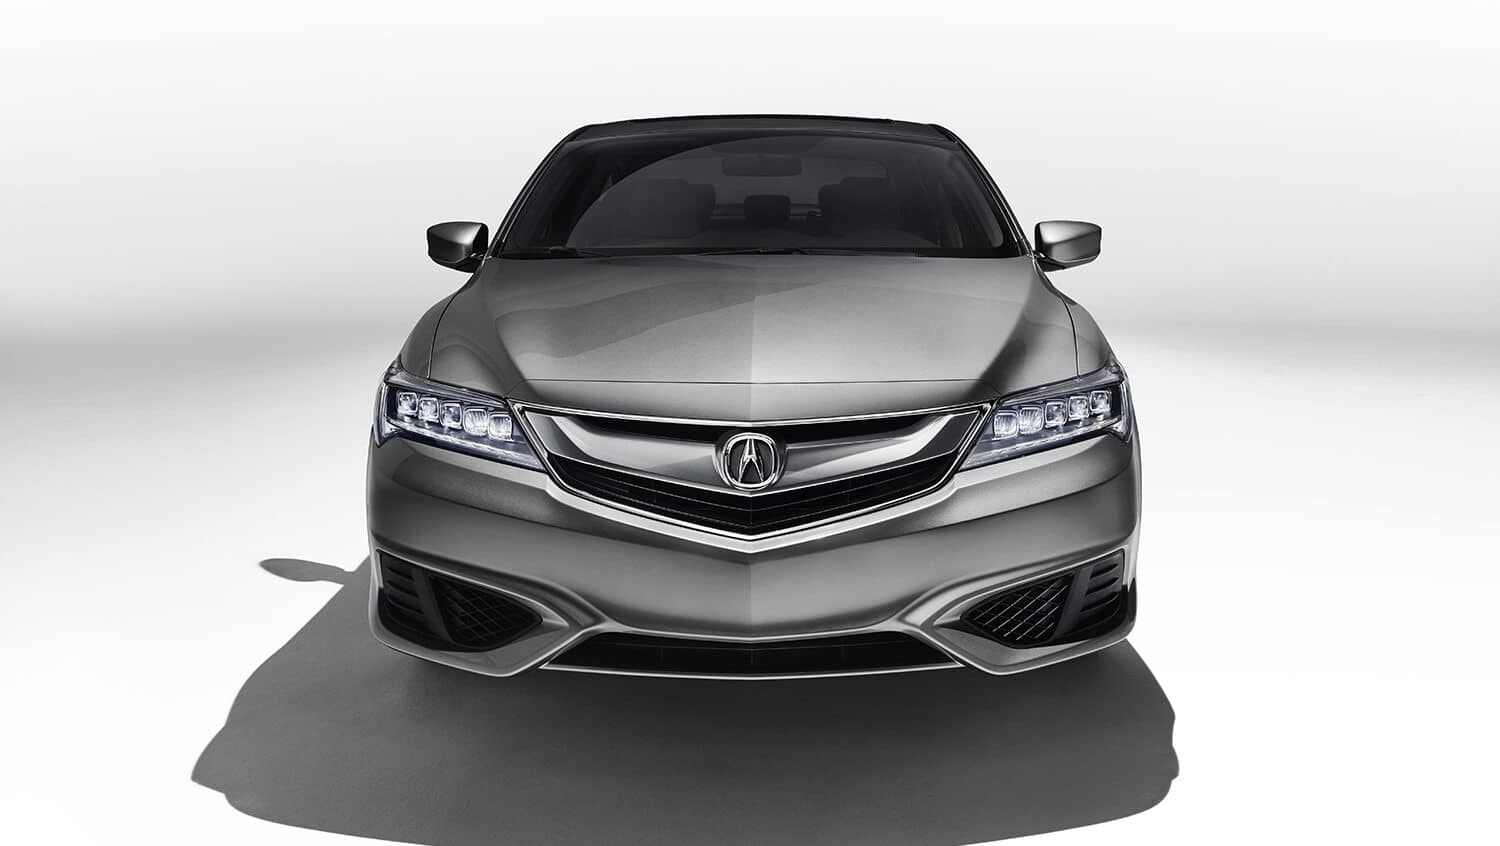 2018 Acura Ilx Kentucky Dealers Association Compact Sport Timing Belt 2013 Exterior Front Fascia